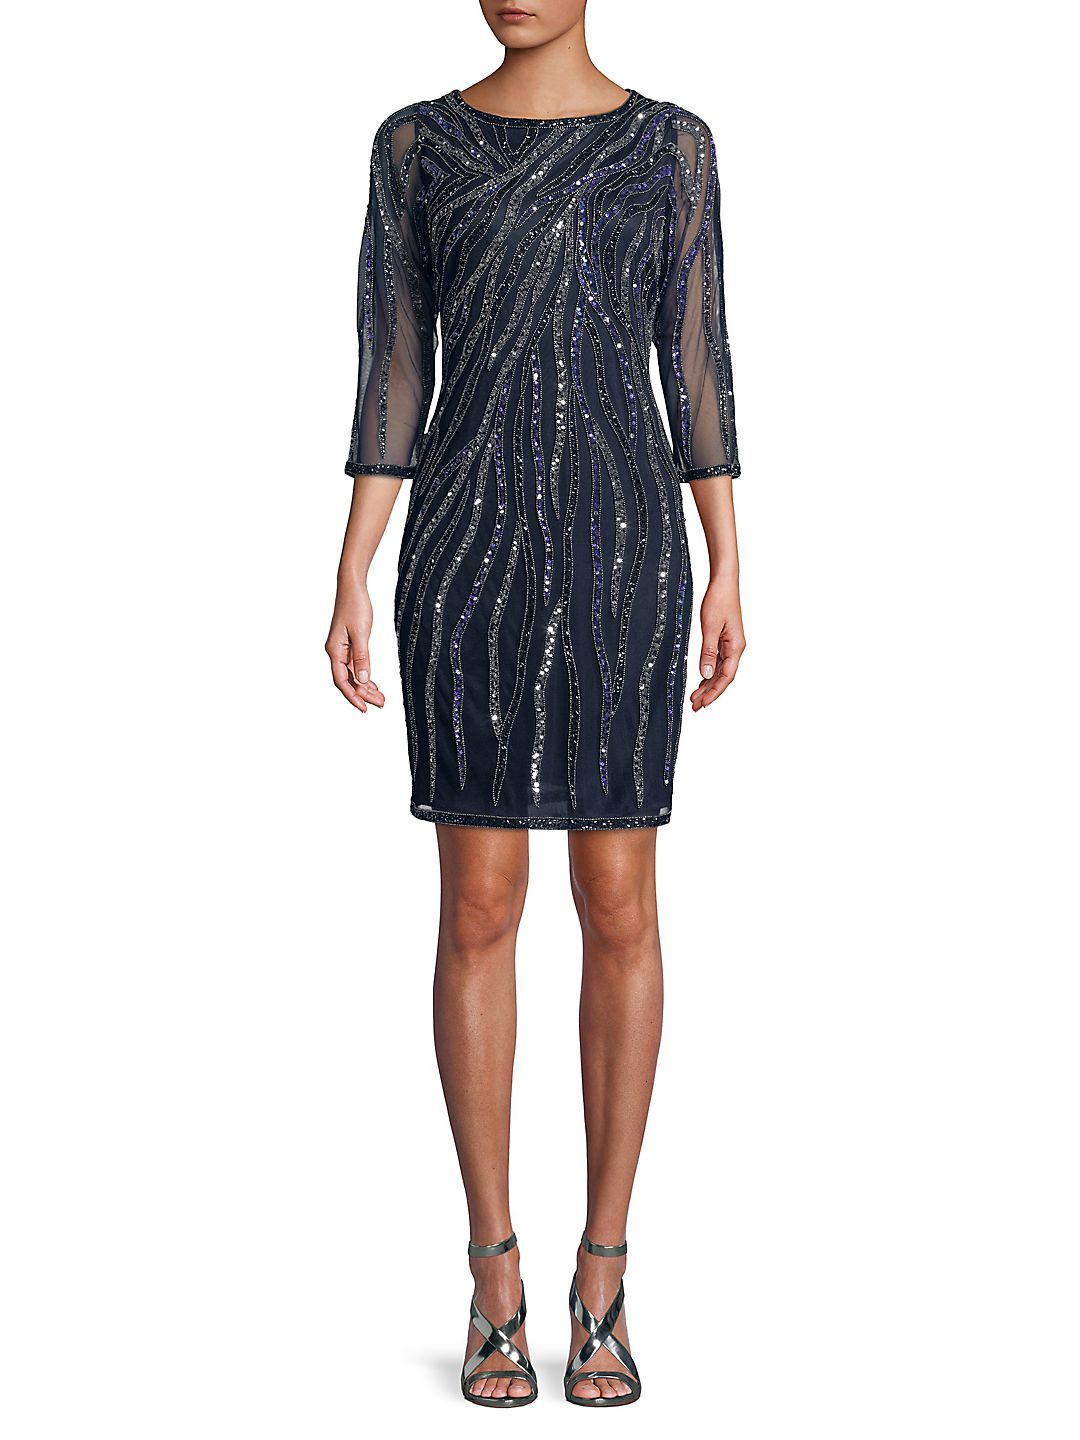 j kara sequined sheath dress walmart com